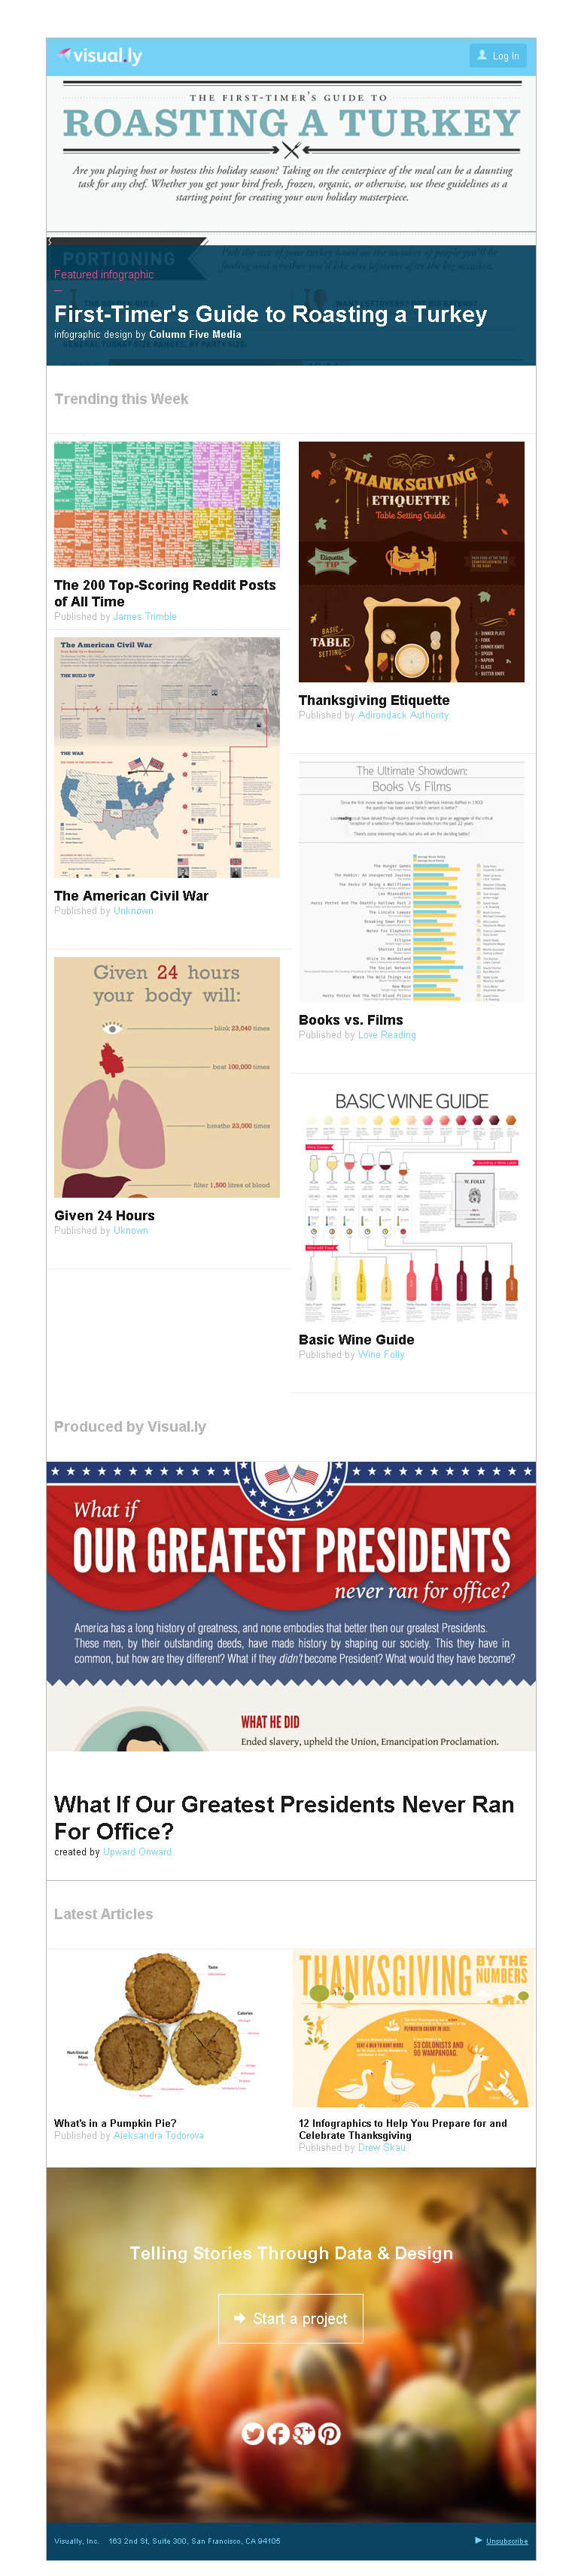 visual.ly-email-marketing-design-infographic-style-happy-thanksgiving